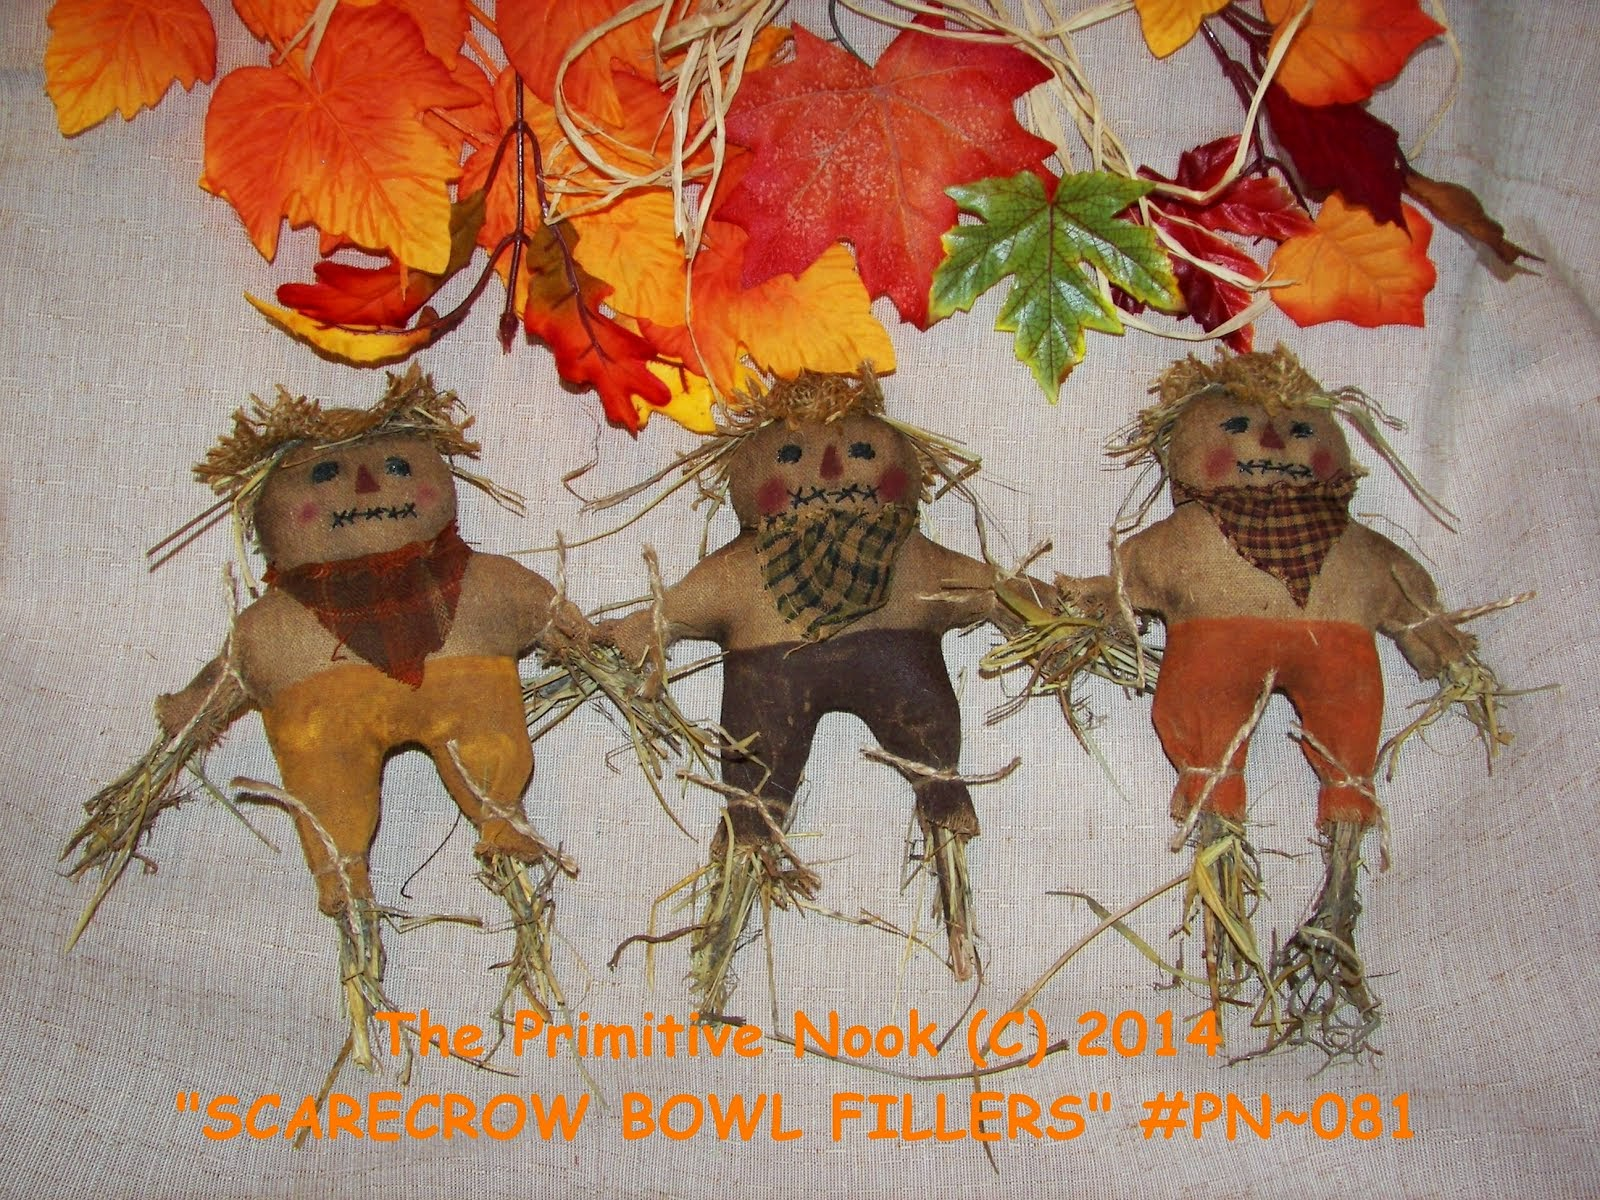 BRAND NEW SCARECROW BOWL FILLERS PATTERN (C) 2014